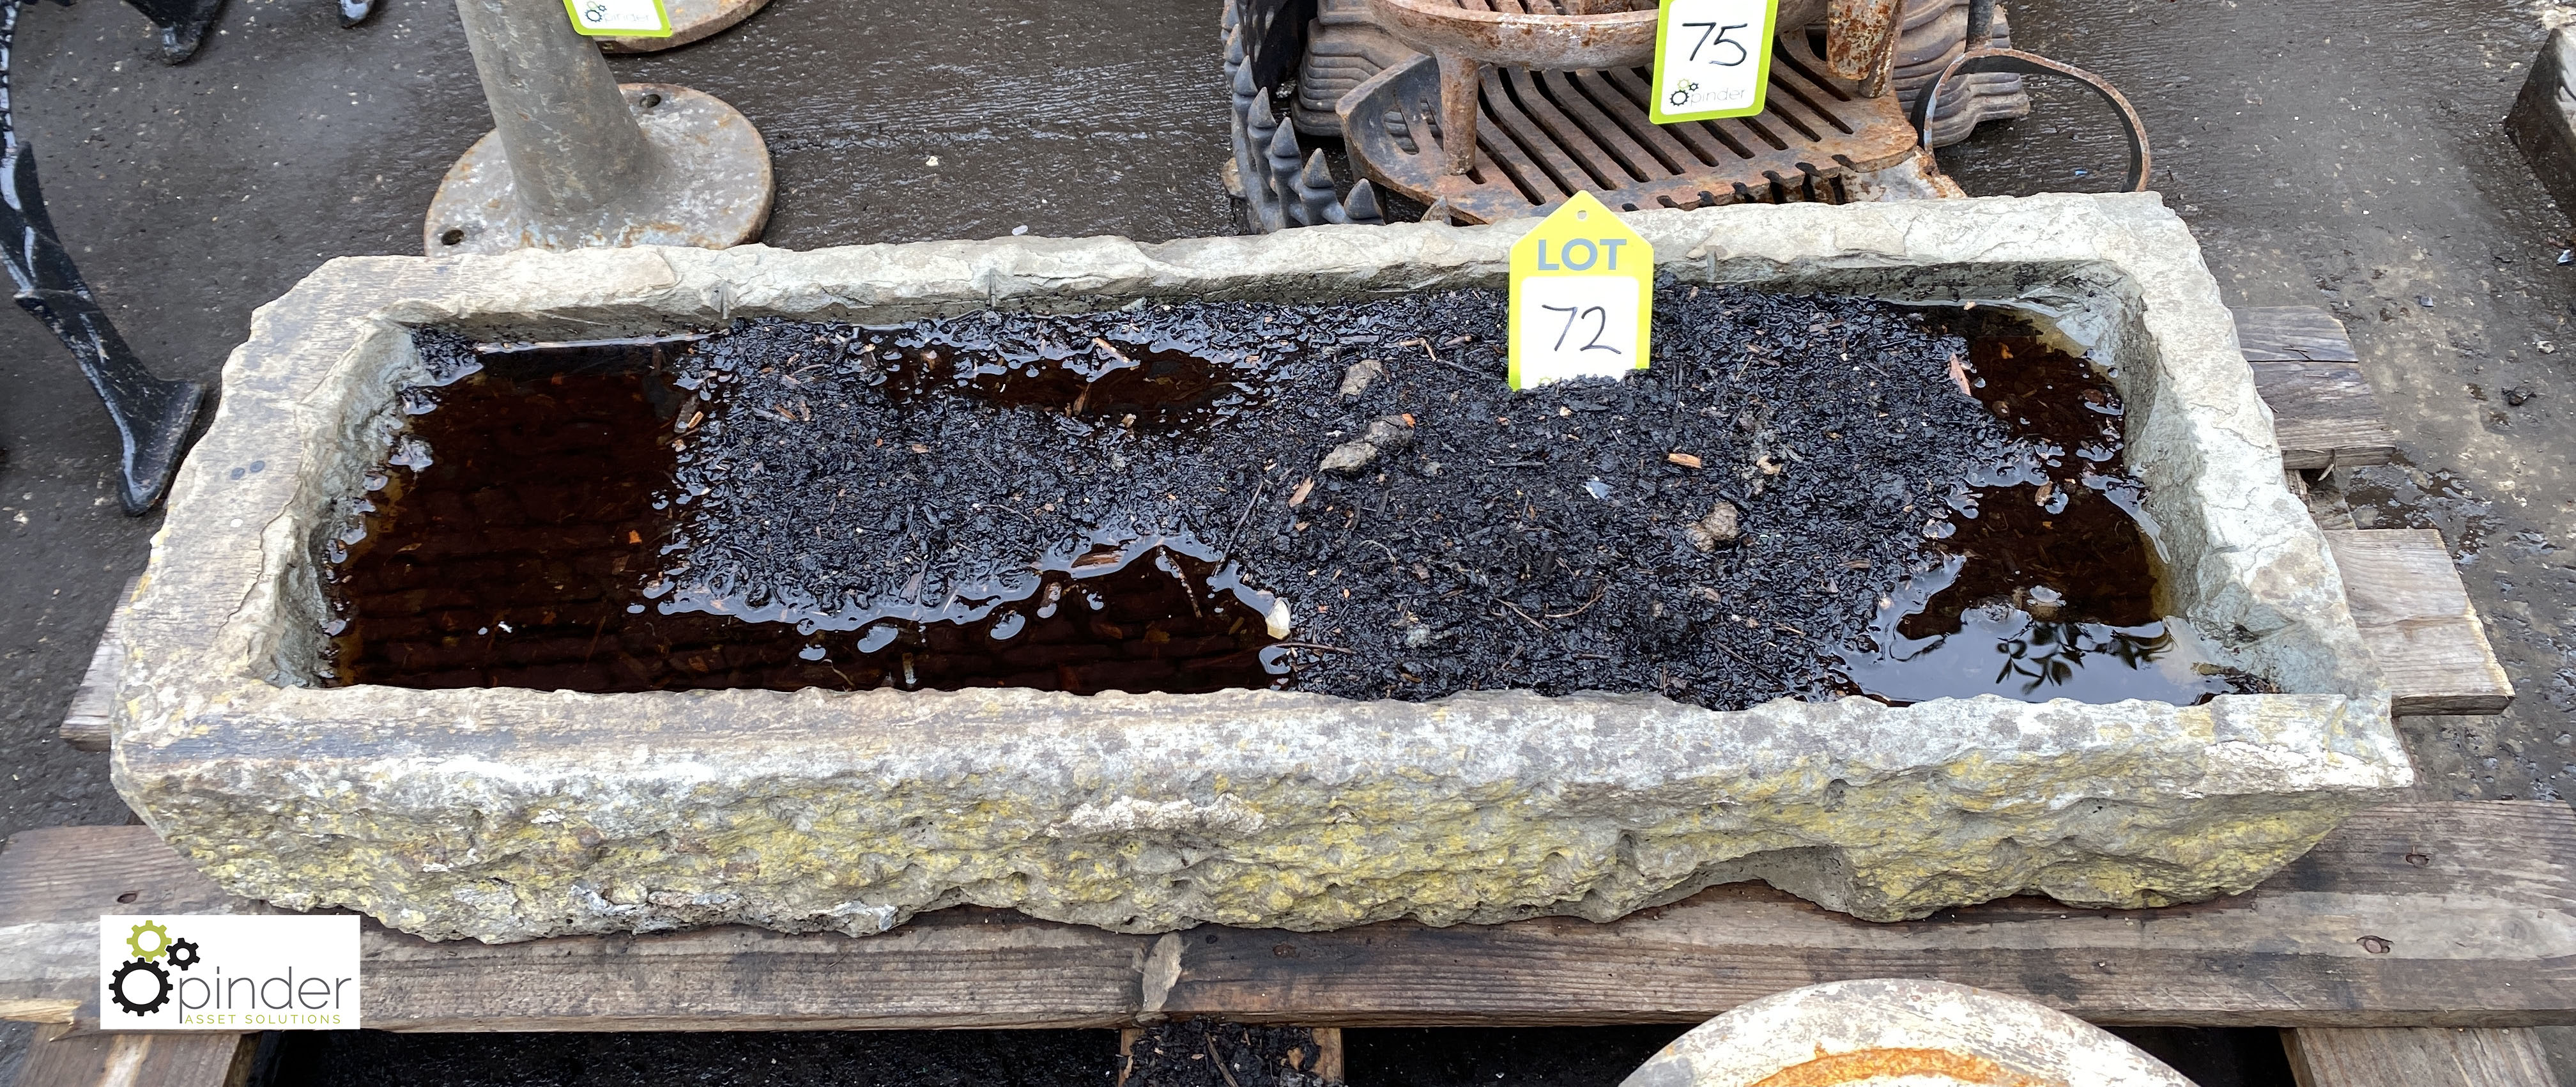 Stone Trough, 960mm x 330mm x 150mm deep (LOCATION: Sussex Street, Sheffield) - Image 2 of 3